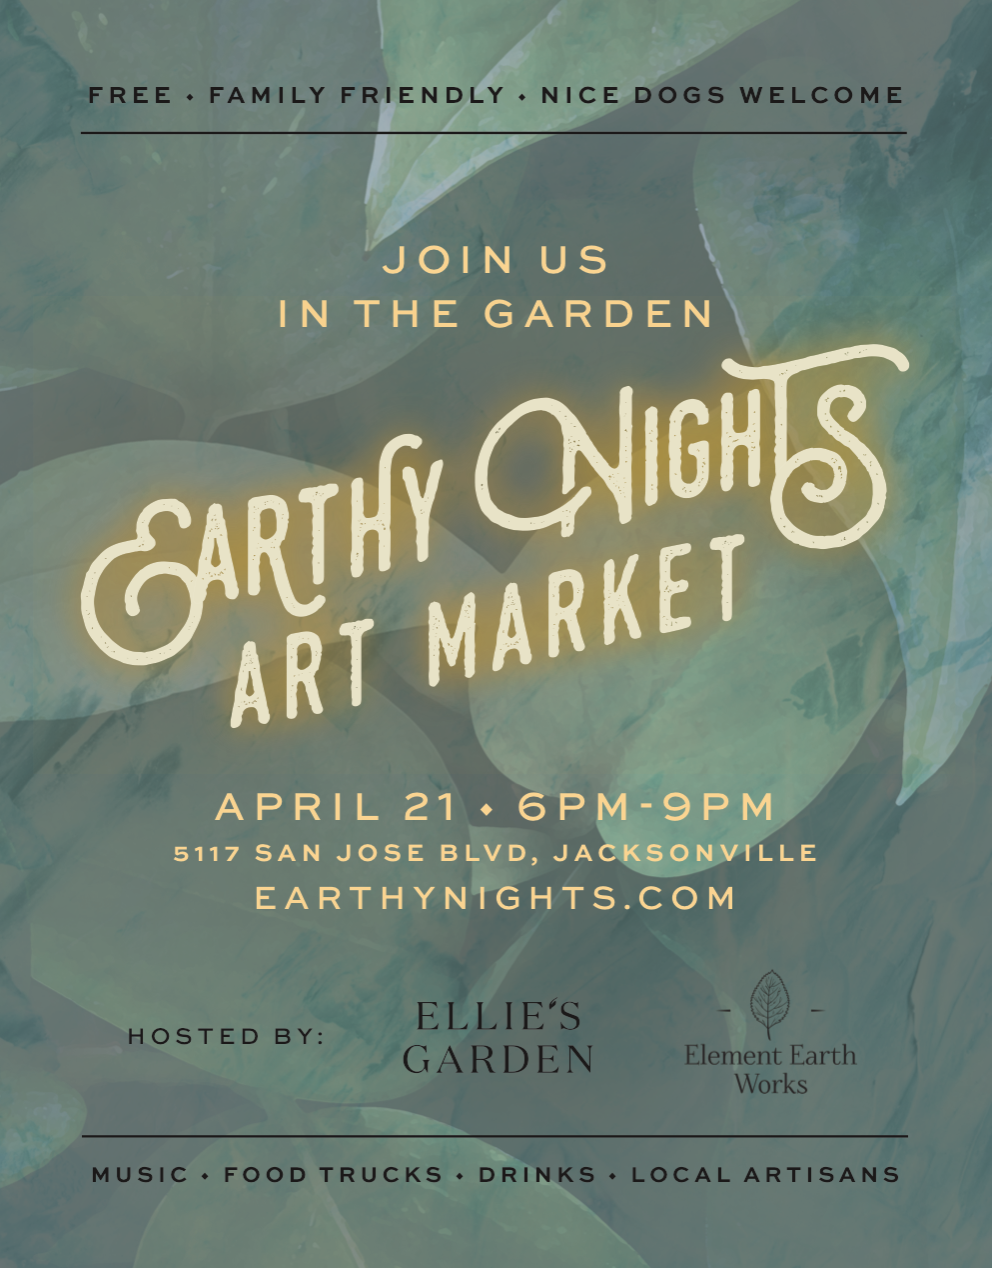 EARTHY NIGHTS ART MARKET  - Earth Day Eve, April 22  |  6:00 - 9:00pm  Come celebrate Earth Day with us!!Hosted by Element Earth Works, Dancing Elephant, and Ellie's Garden - join us for an evening market in the garden, under the stars! Featuring local artisans and makers, food trucks, beer, music, and fun for the kids.This is a free family event. Friendly pets welcome!If you would like to be a vendor, please contact us for submissions at:earthynights@gmail.comThere is no deadline to submit your work, and you may also be considered for future markets.Click here to learn more